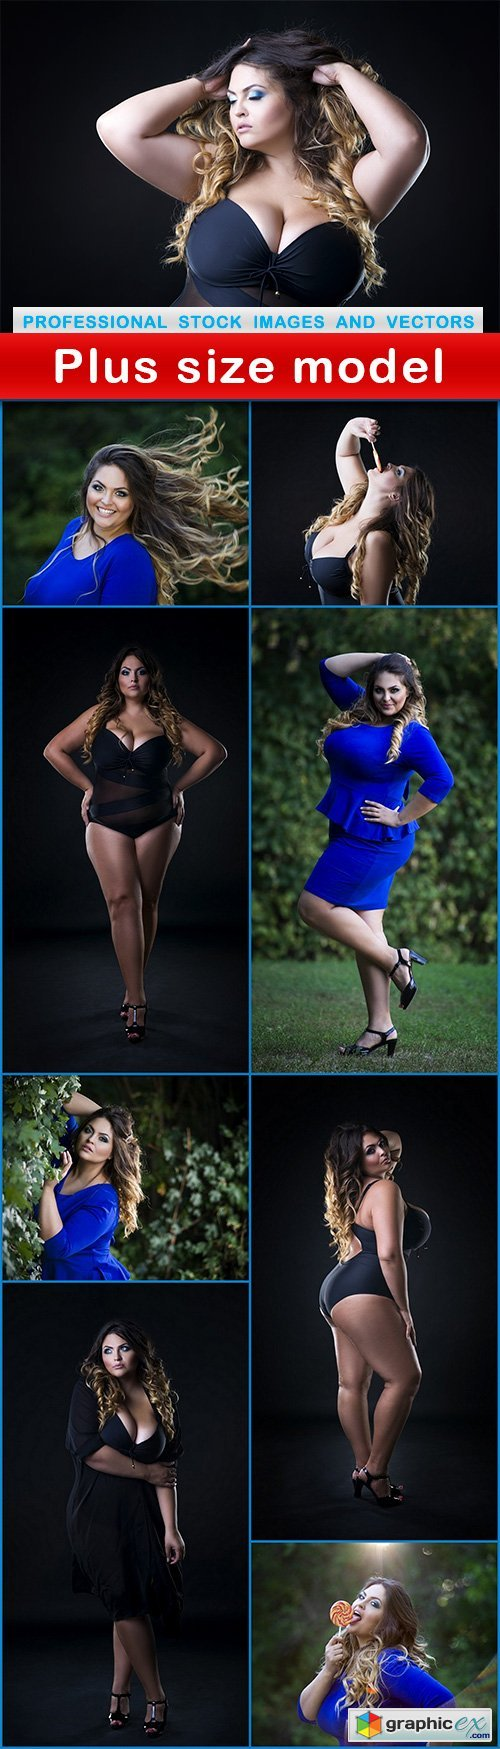 Plus size model - 9 UHQ JPEG